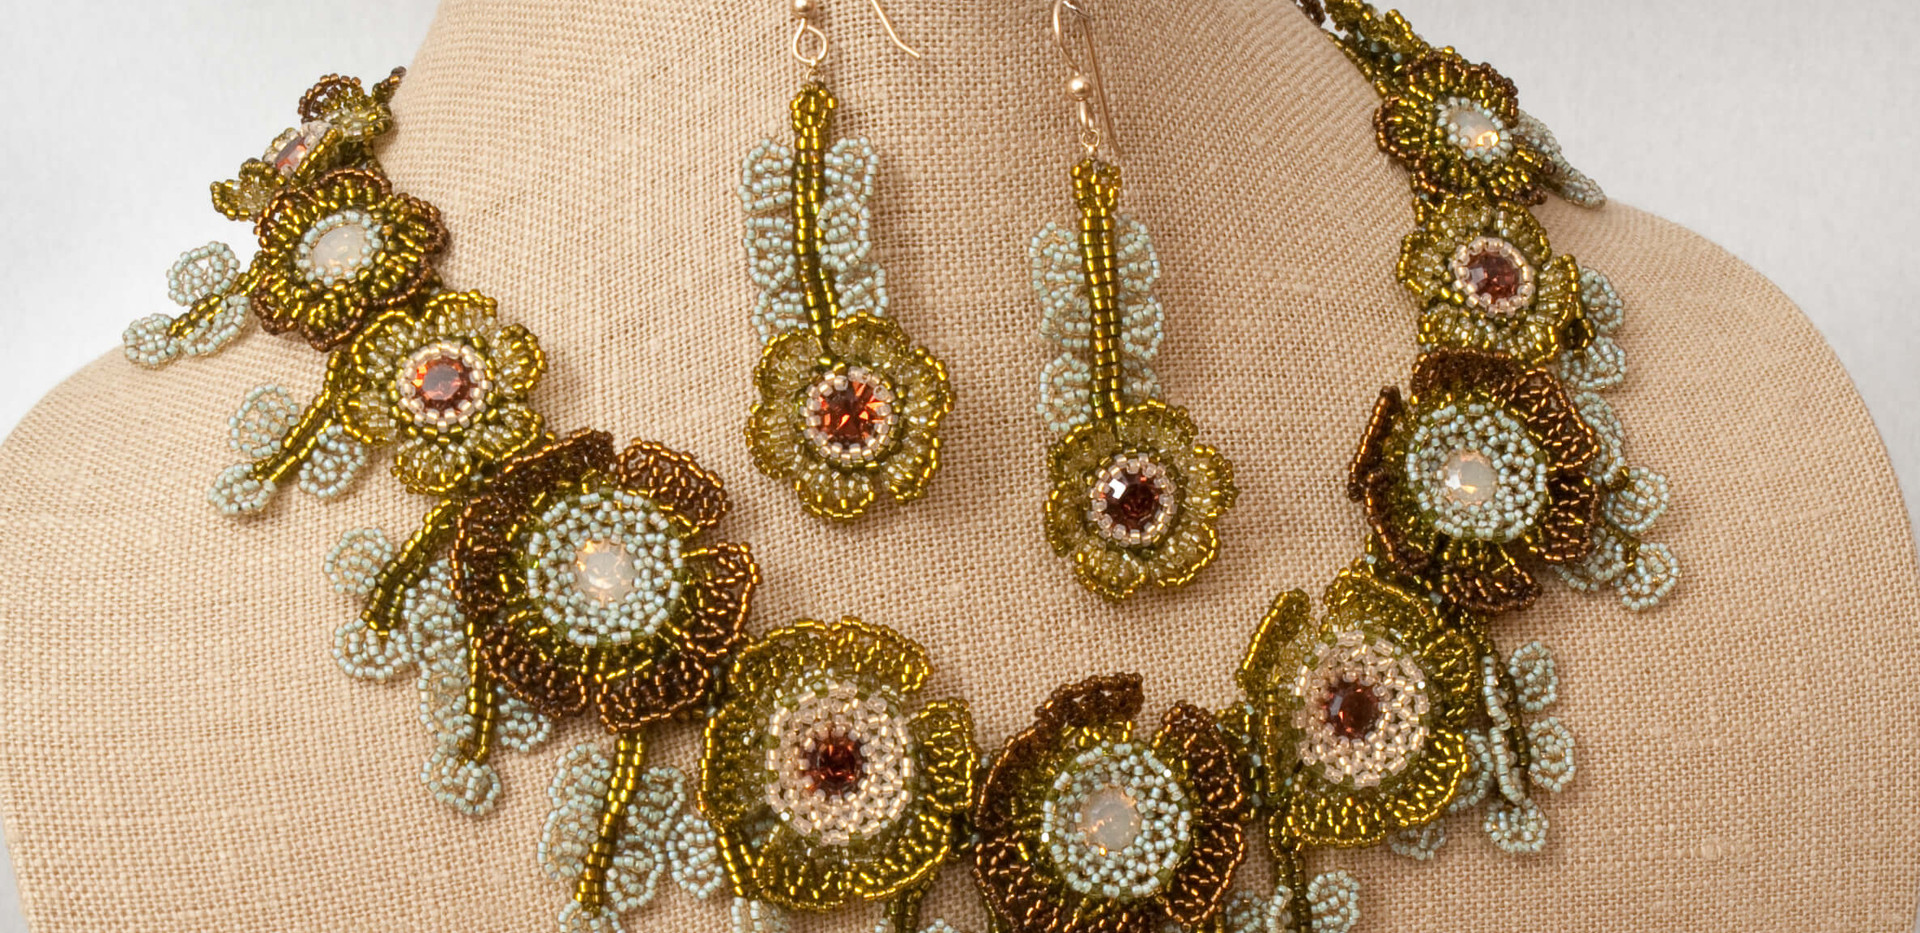 Flowers of The Field Necklace and Earrings in Lt Grey Opal and Smoked Topaz